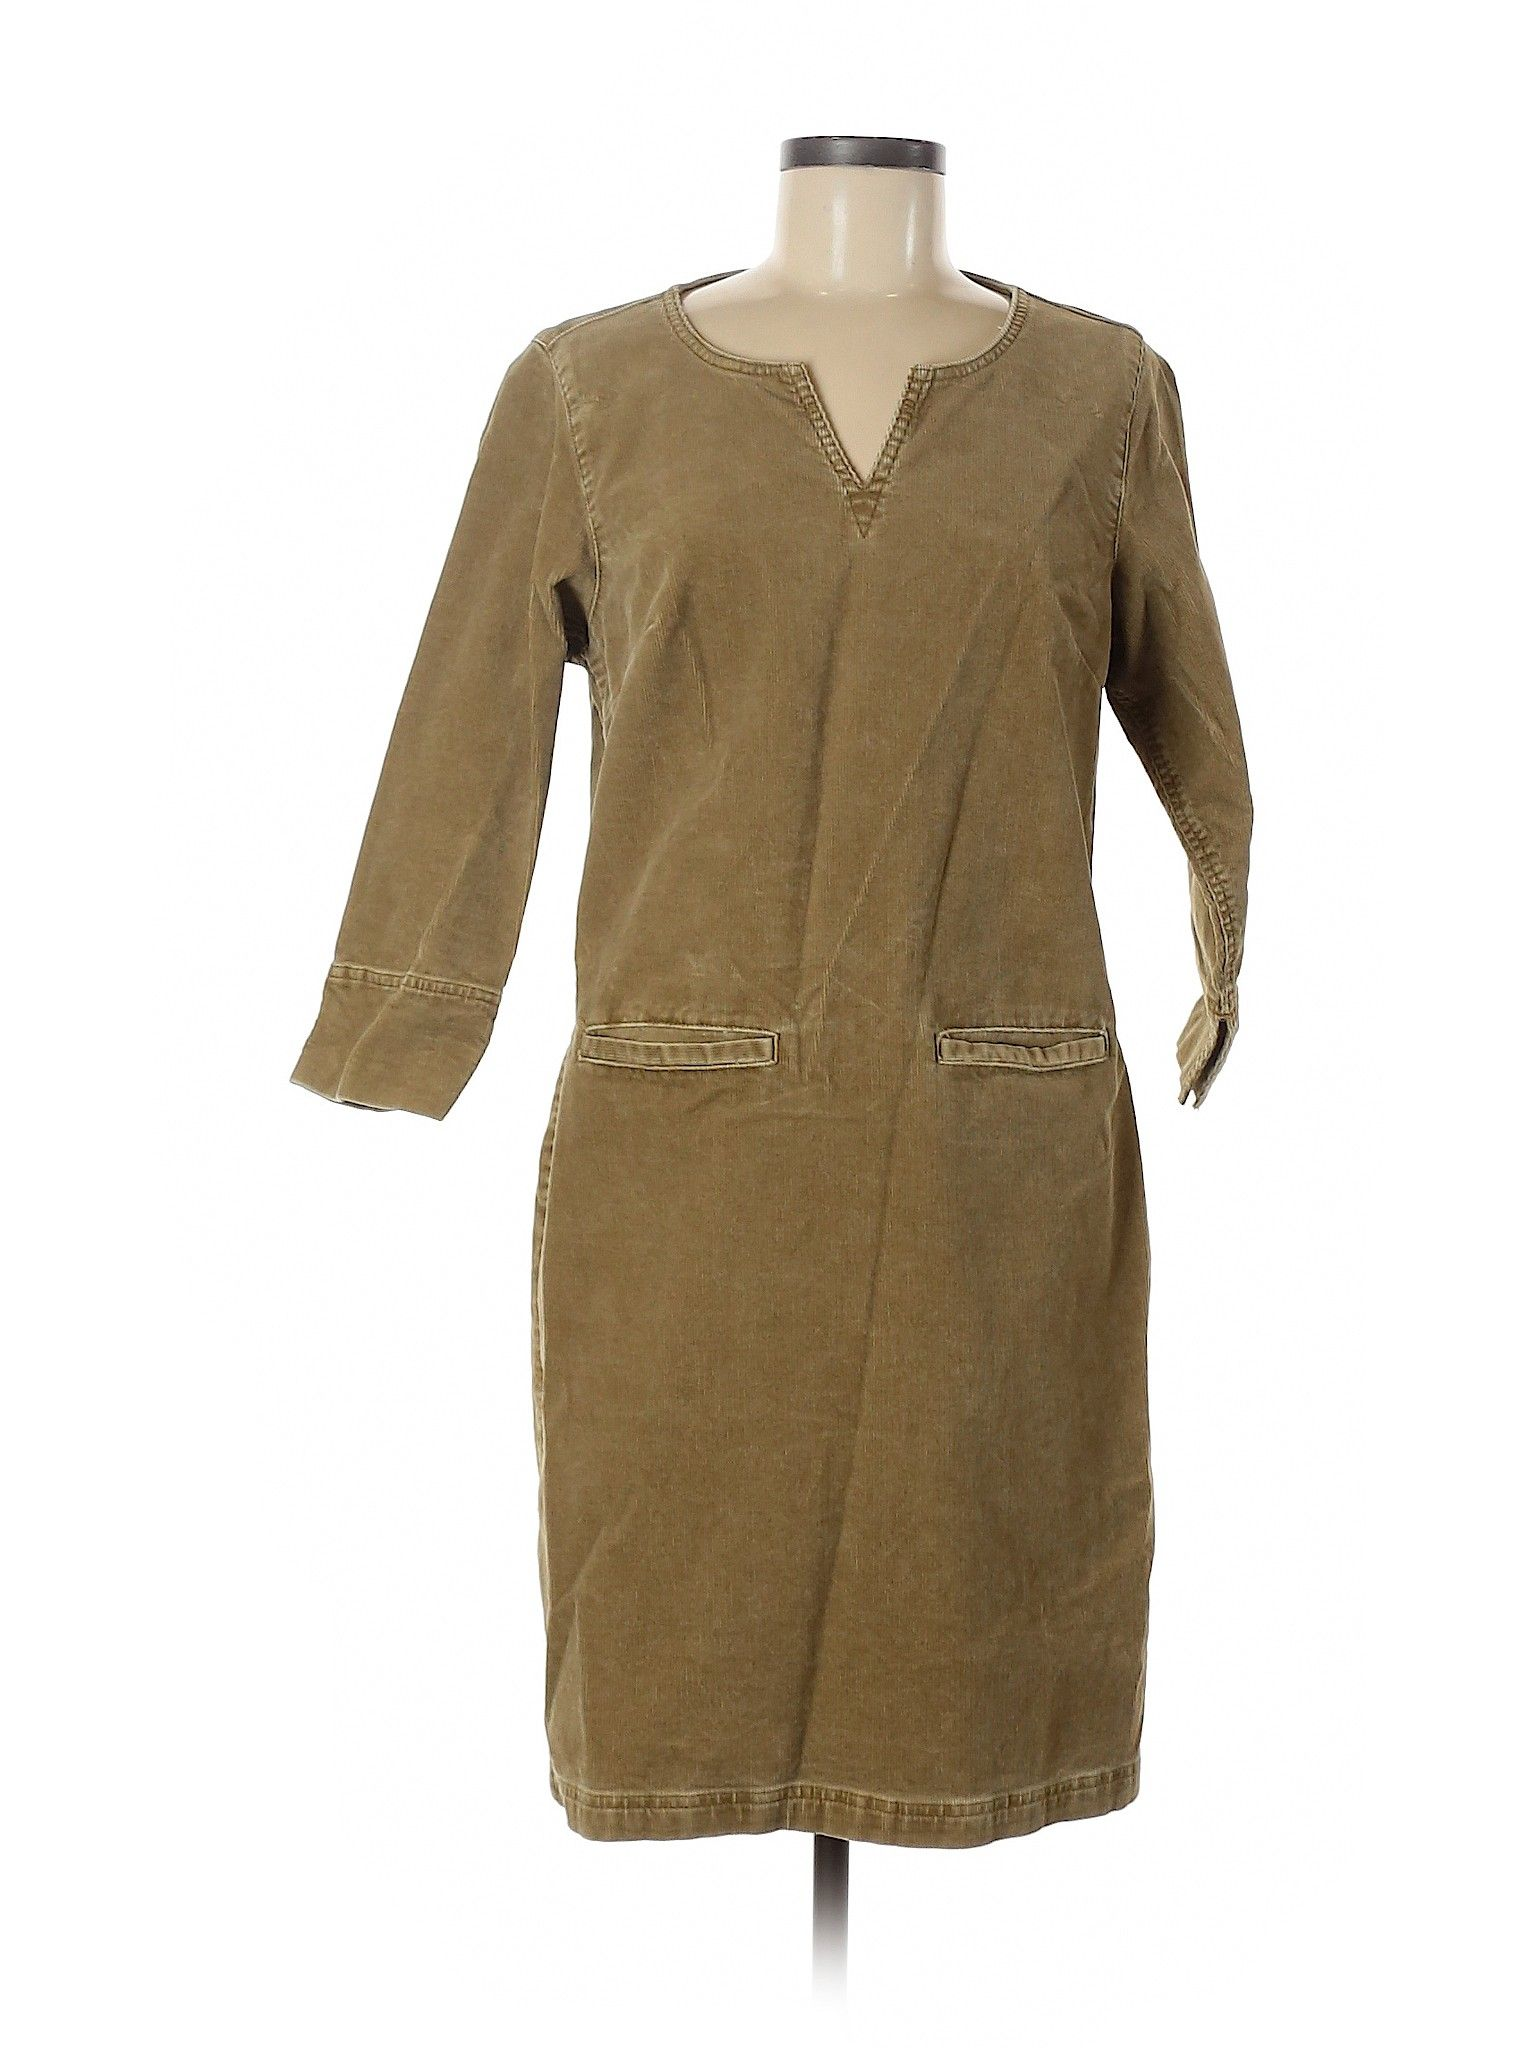 The Territory Ahead Casual Dress Sheath Green Solid Dresses Used Size 6 Clothes Womens Dresses Dresses